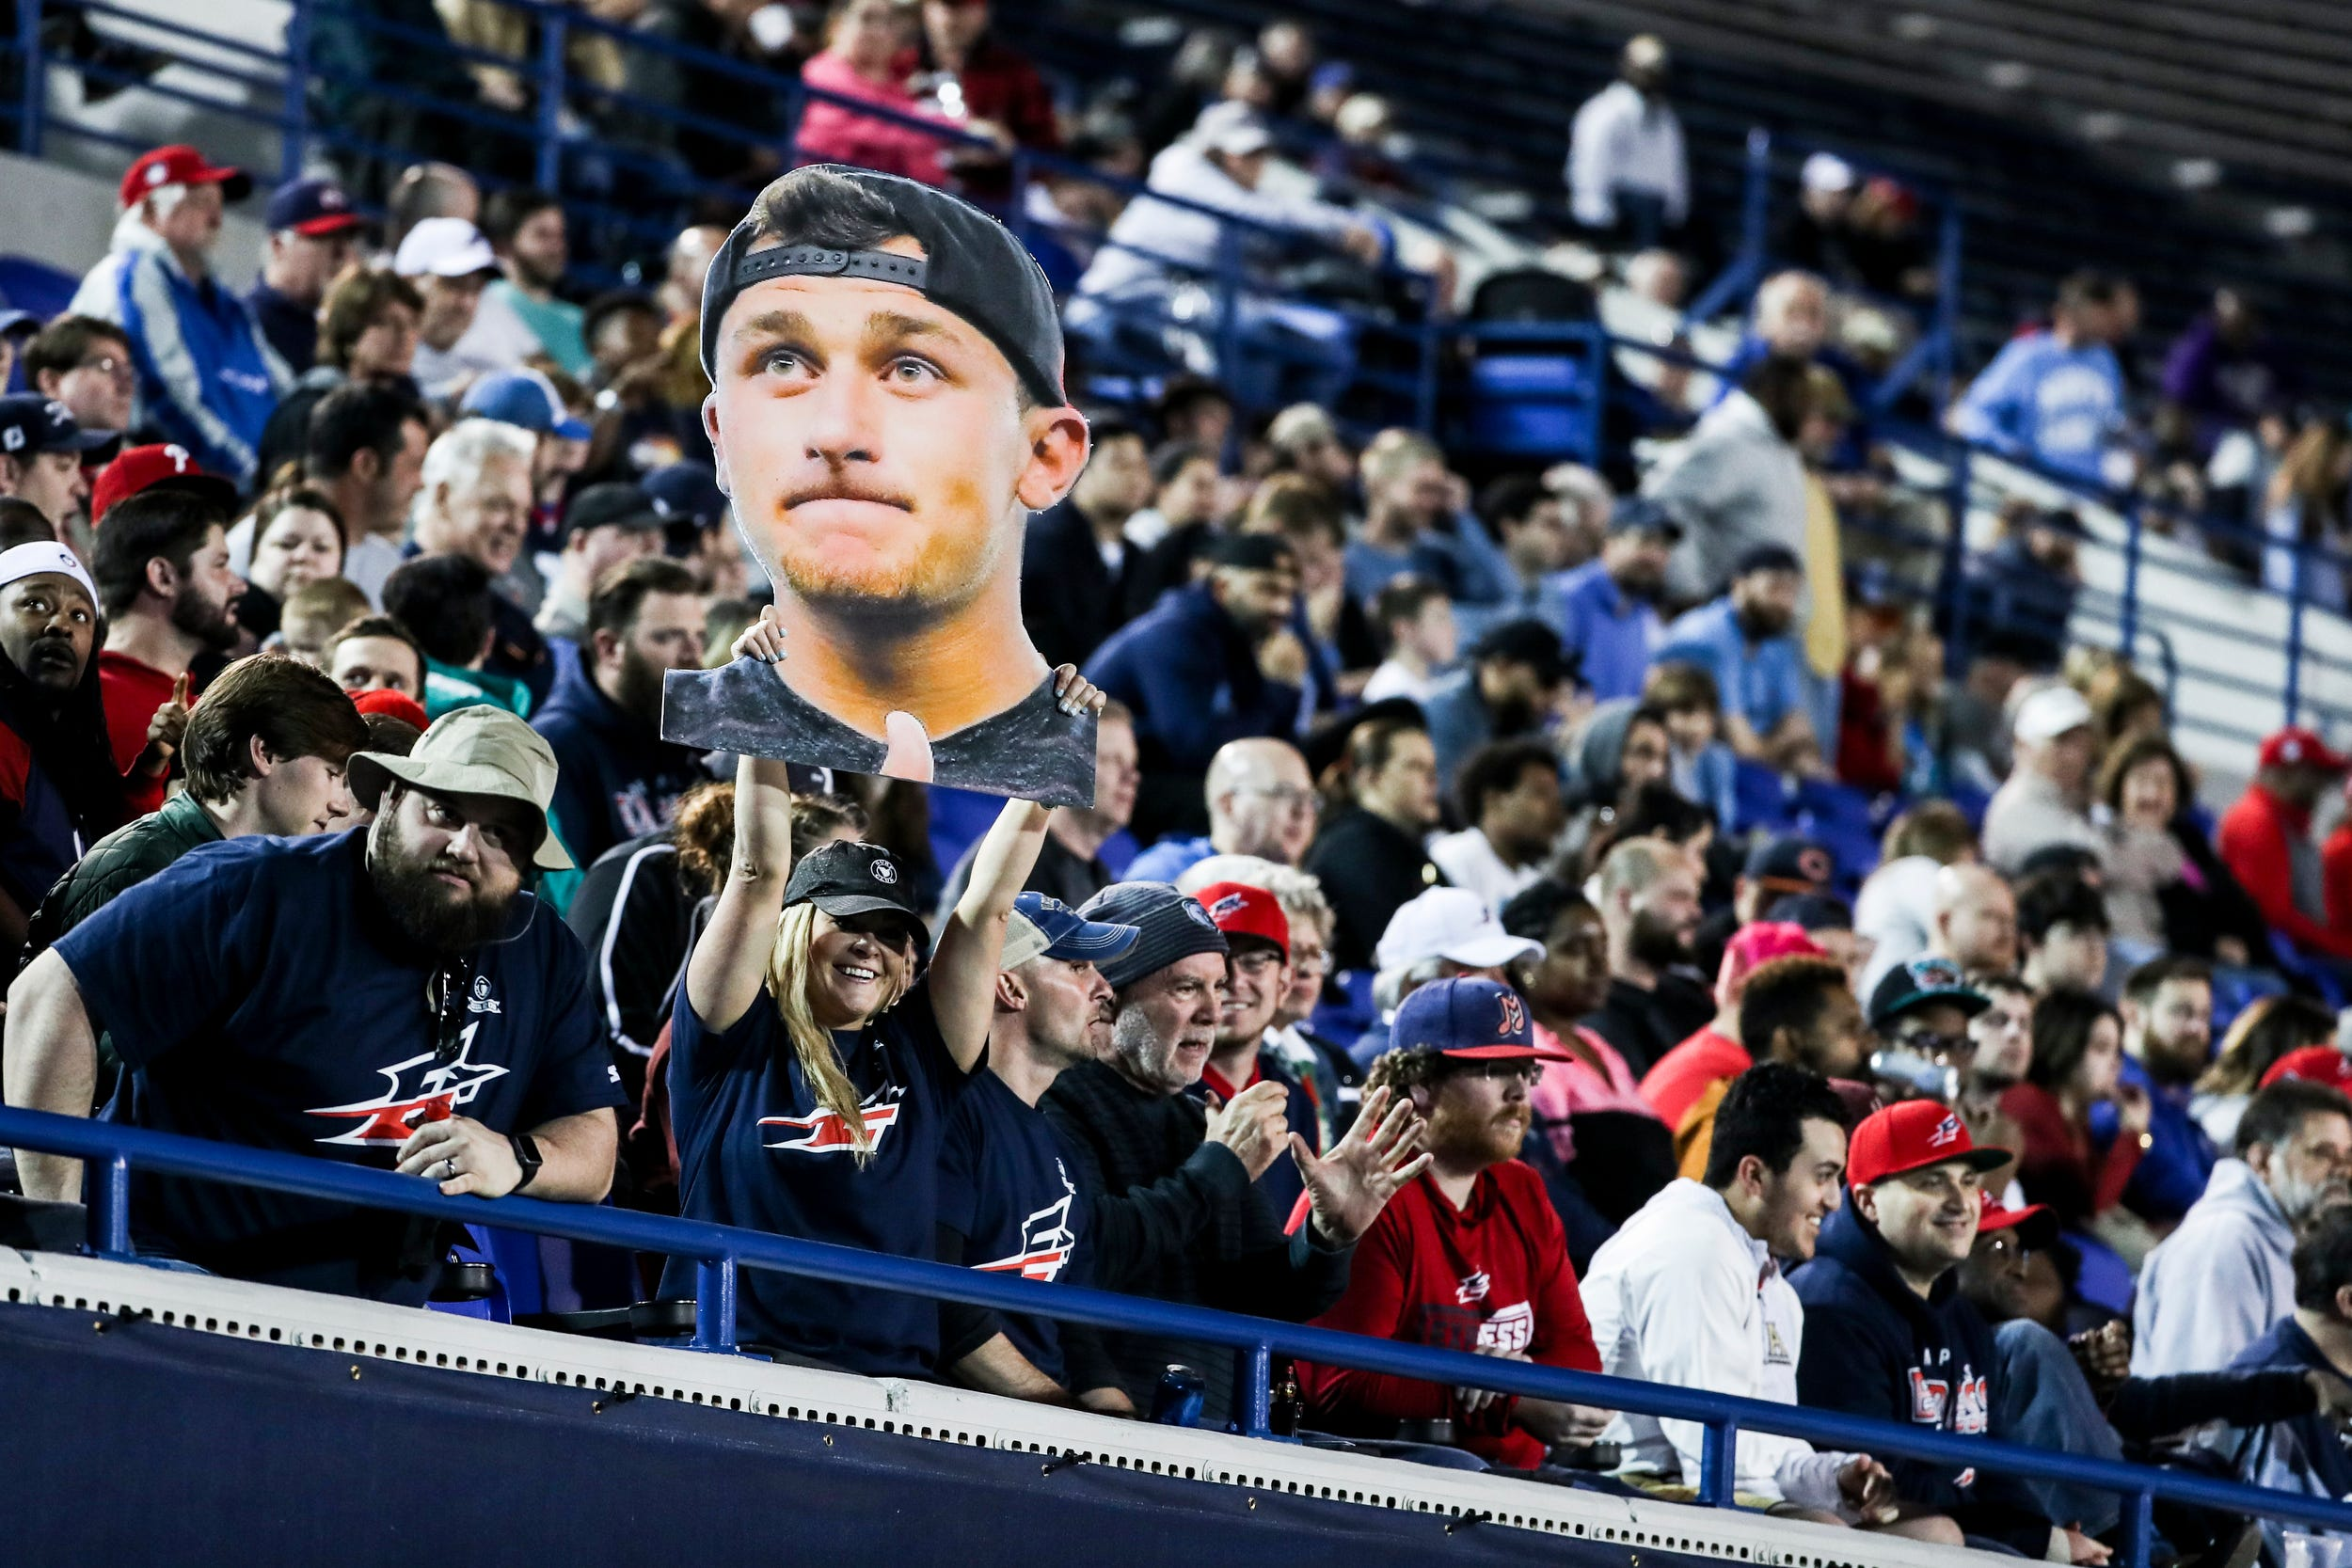 Opinion: Johnny Manziel's AAF debut was strangely compelling because he didn't lead winning drive